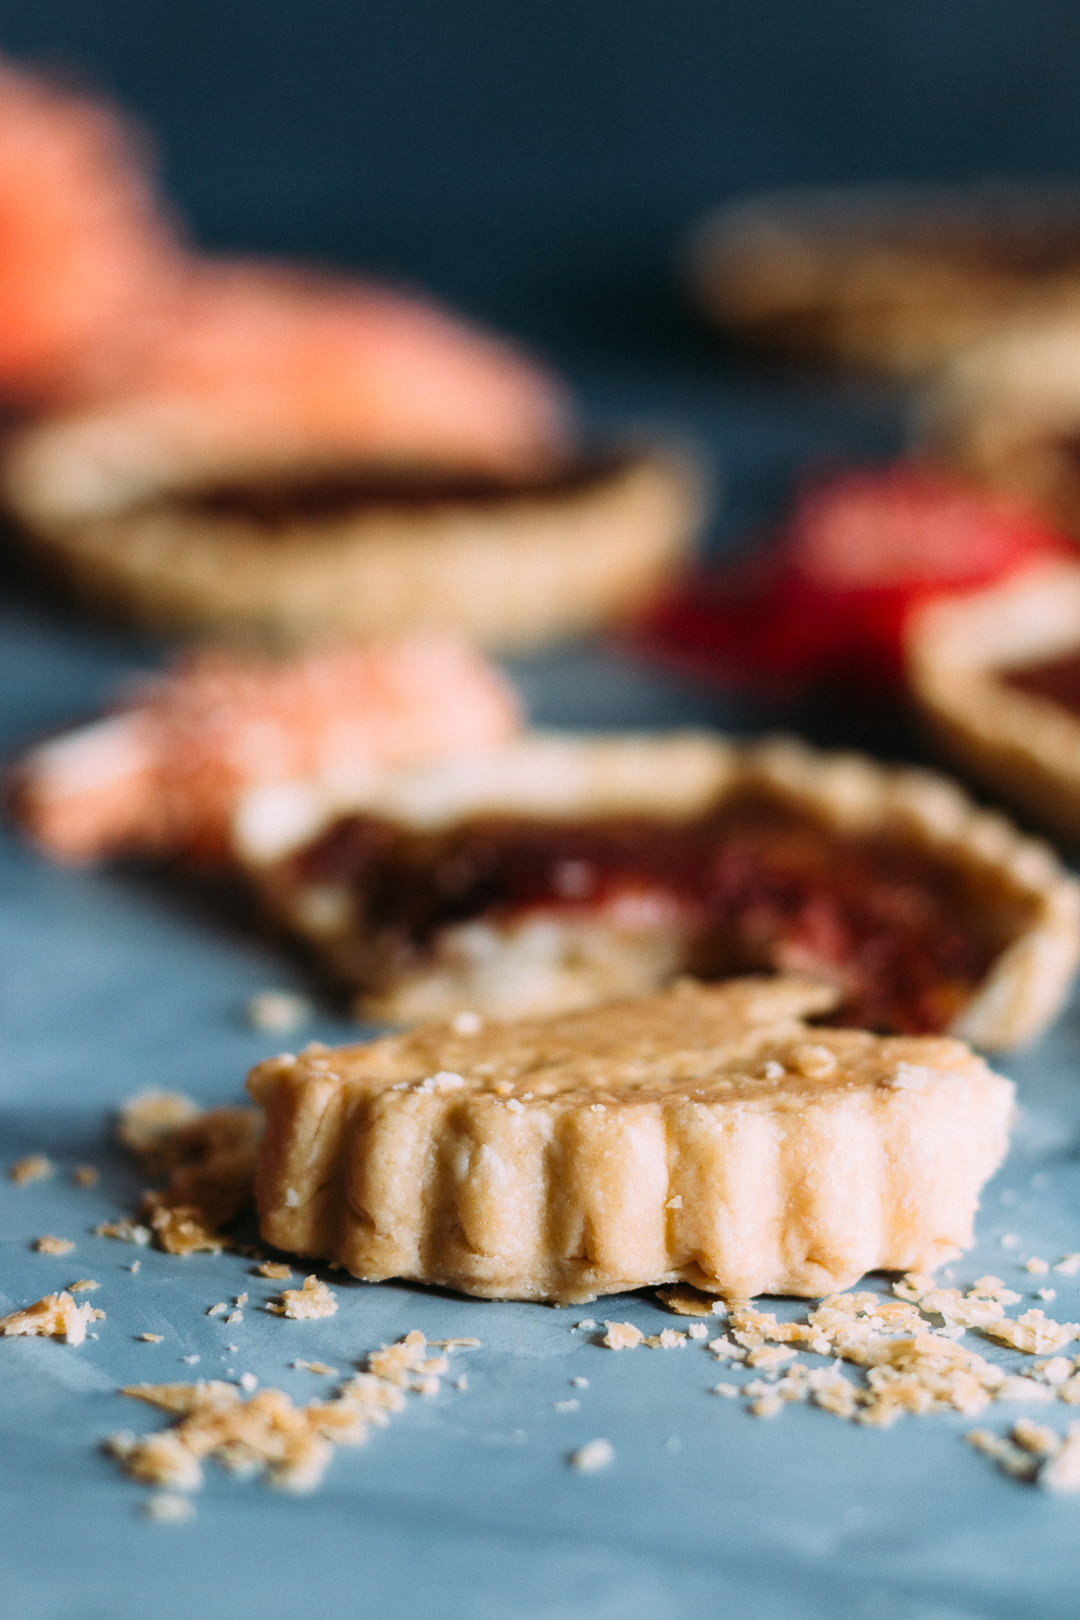 Vertical shot of a rhubarb tart's side and bottom crust.